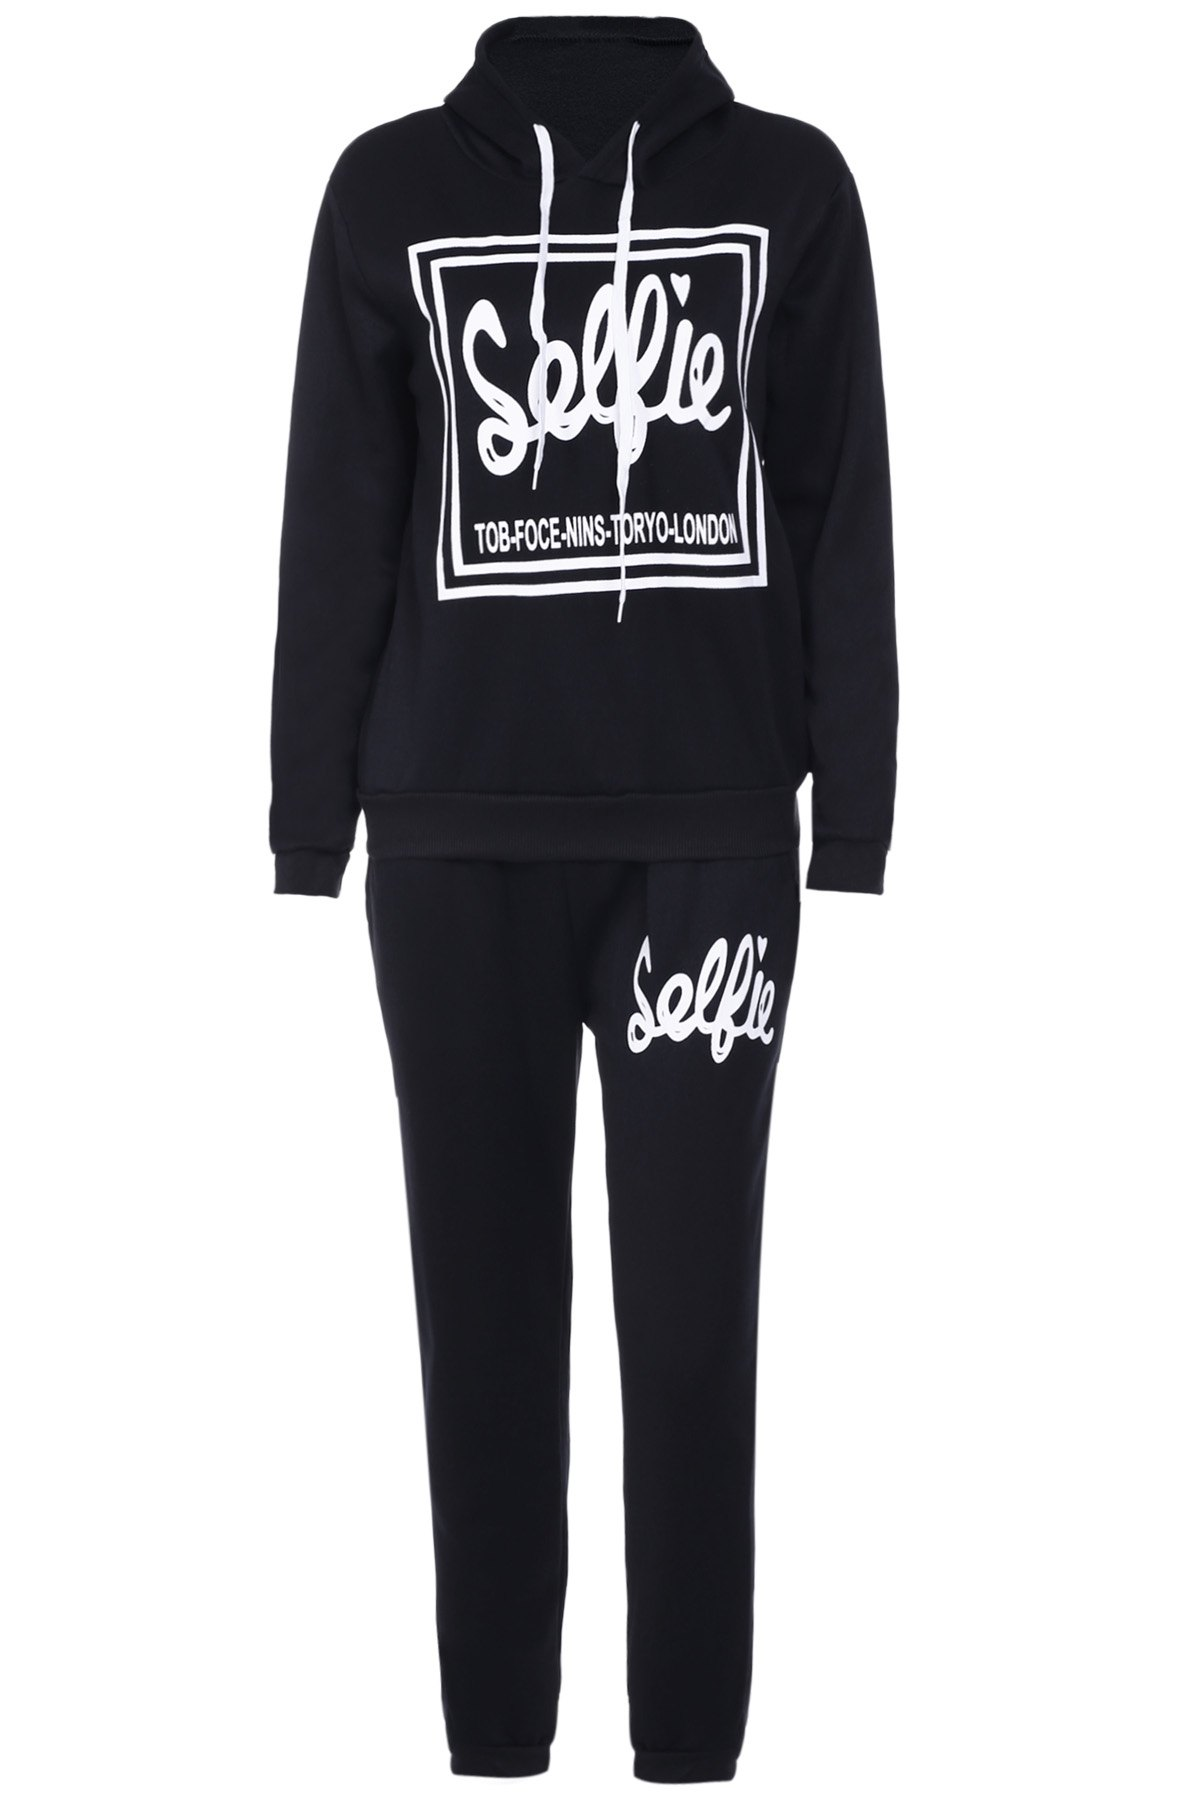 Active Women's Hooded Long Sleeve Letter Printed Hoodie and Pants Suit - BLACK S